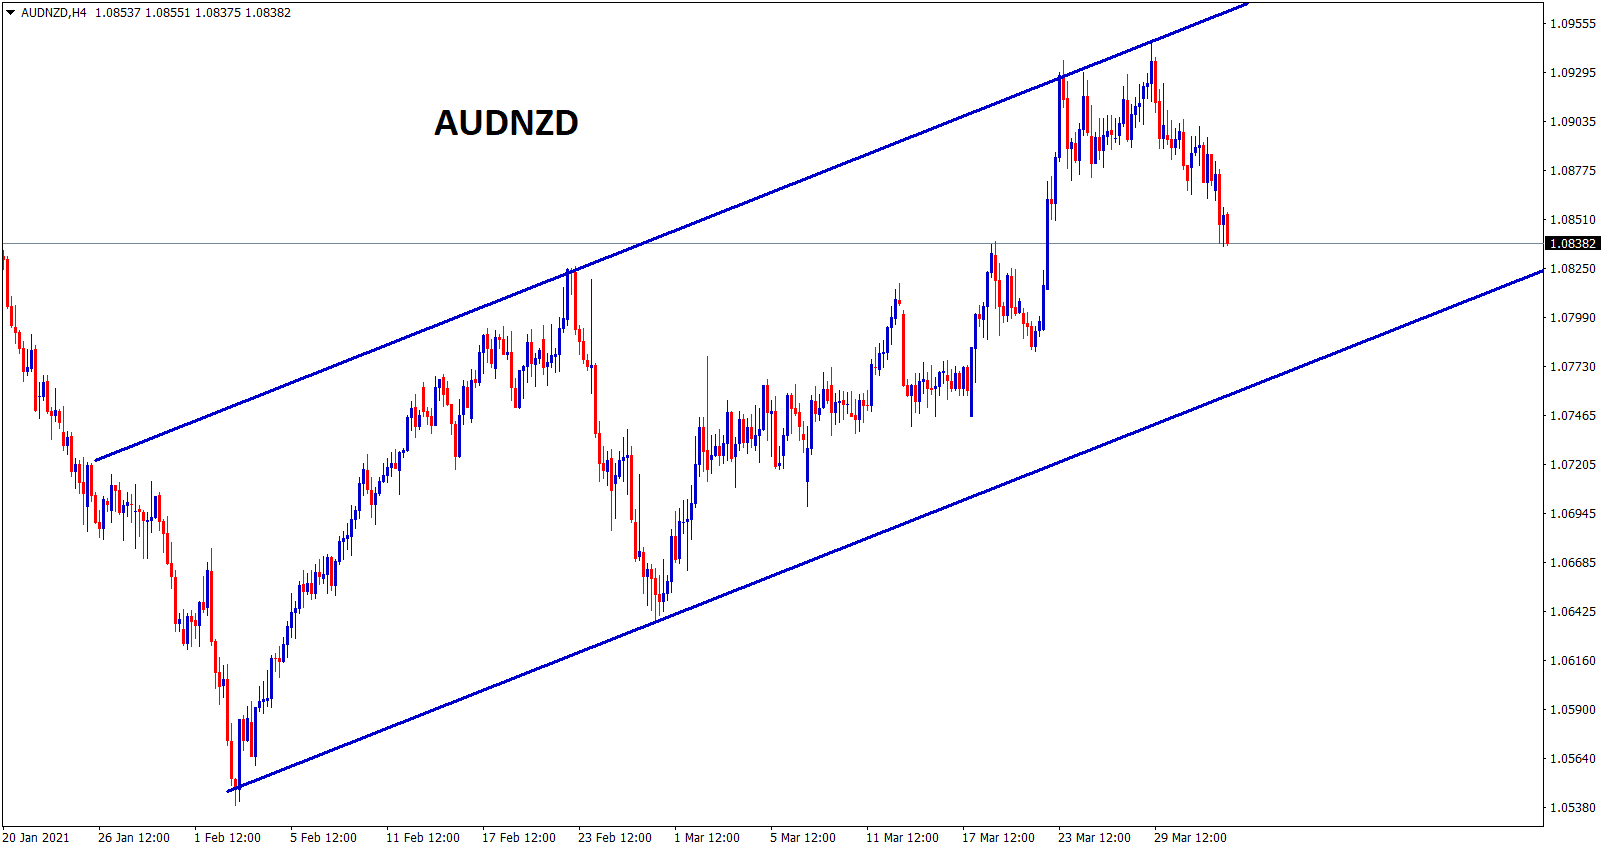 AUDNZD in an uptrend move